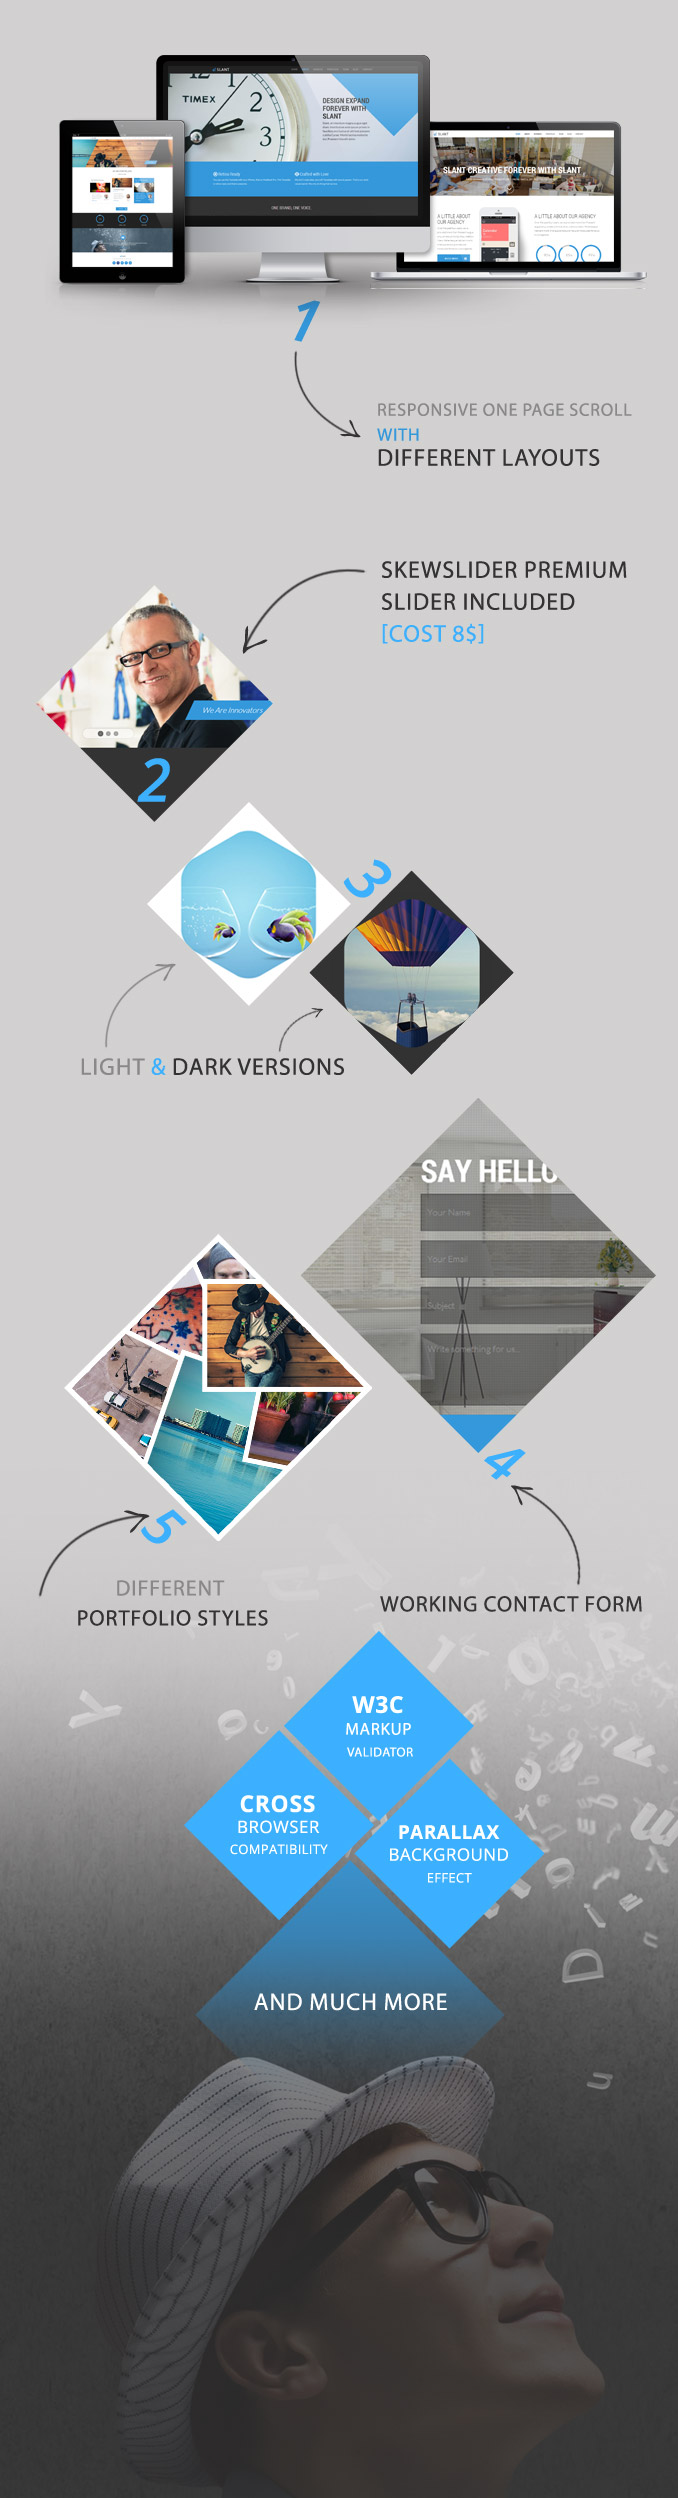 Slant - One Page Responsive Template - 5